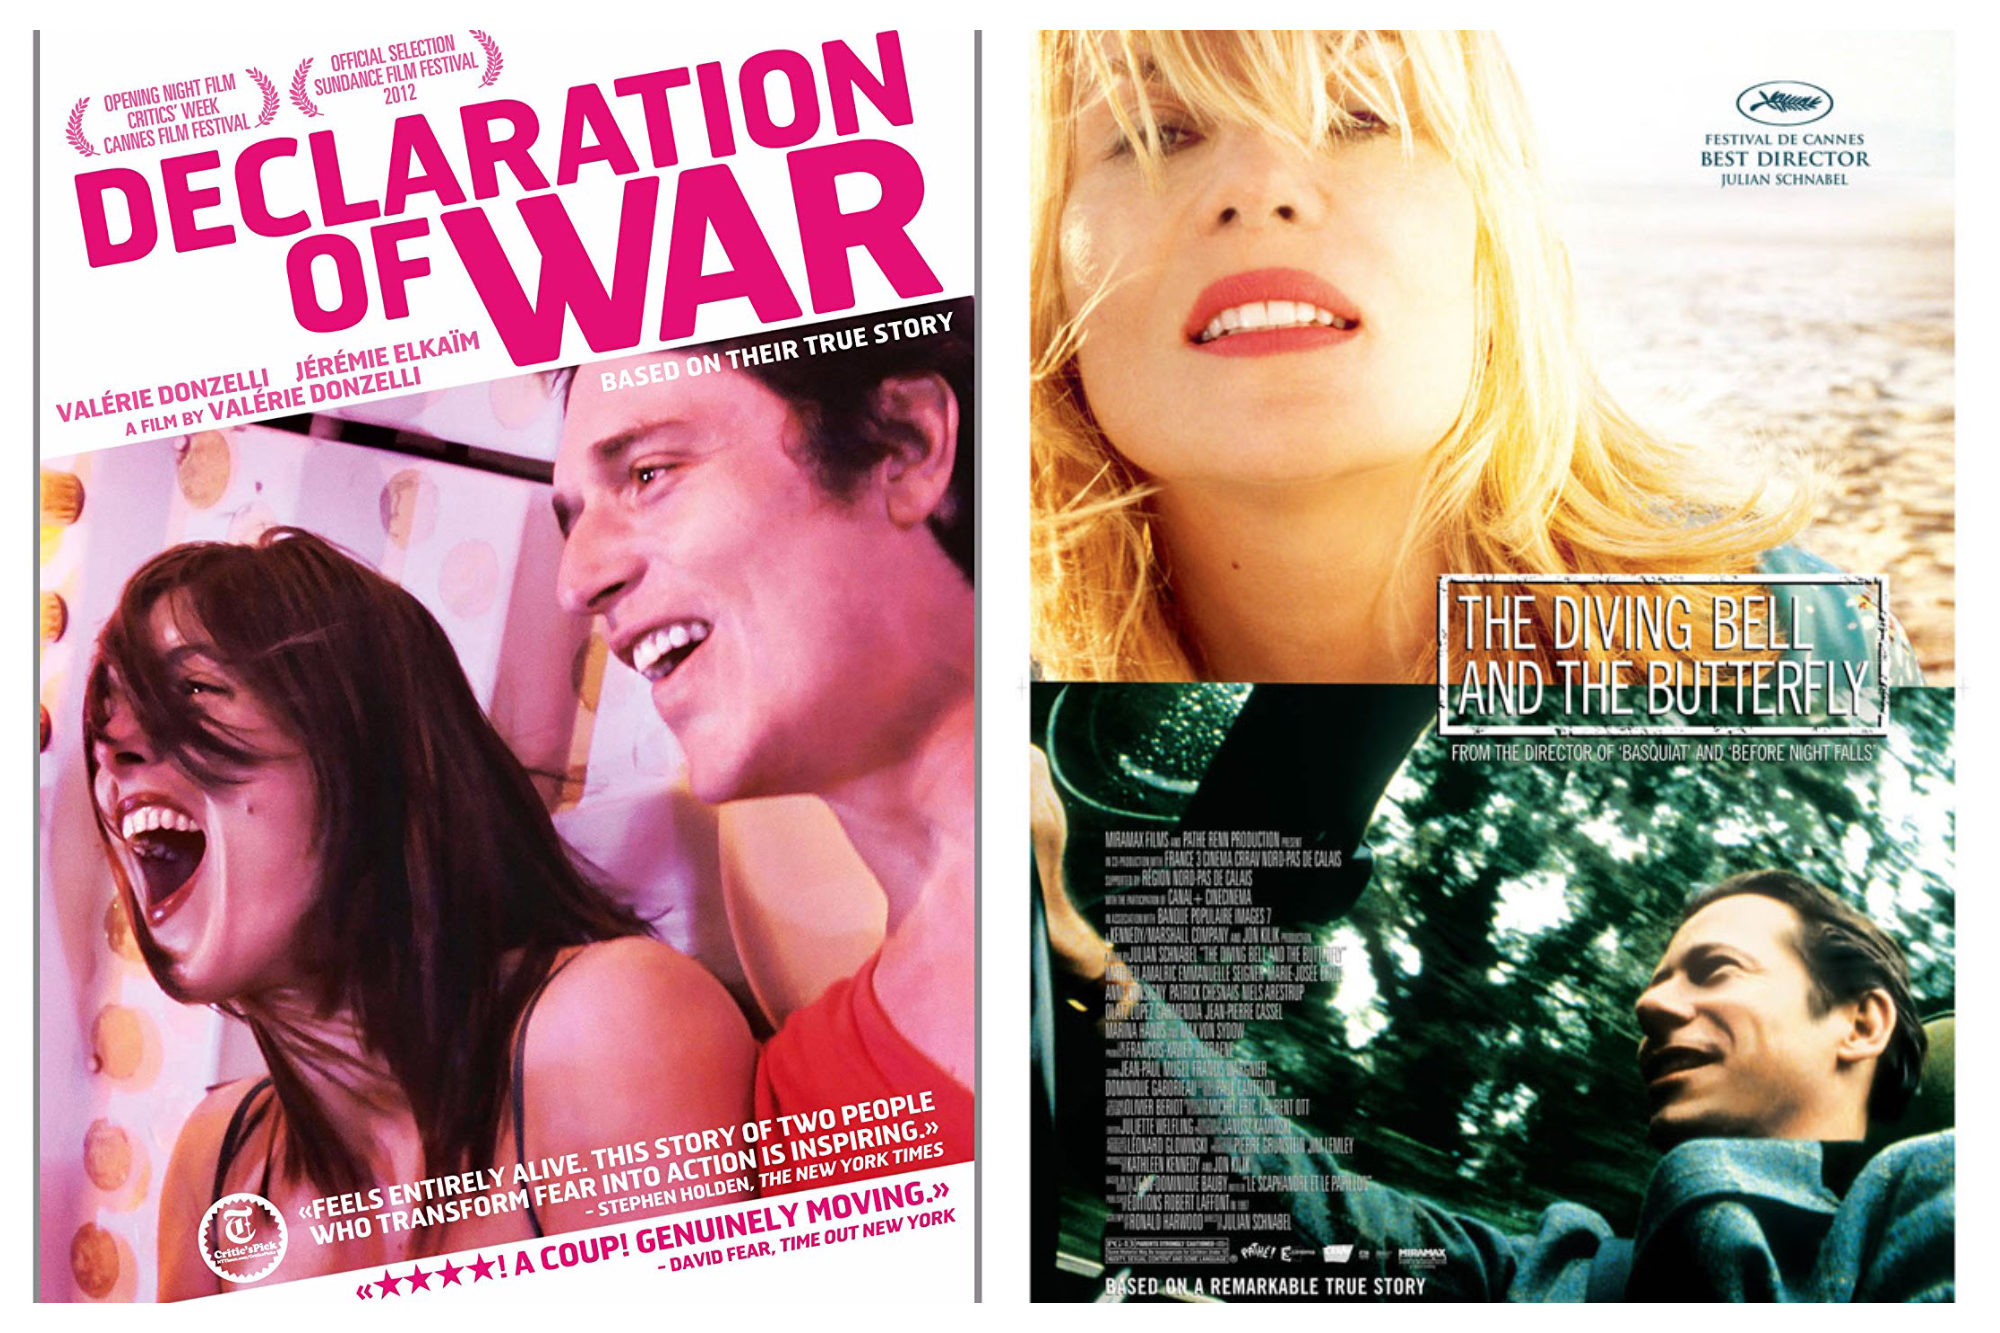 A poster for the French Netflix movie 'Declaration of War' with a man and woman on a fairground ride (left). The poster for the movie 'The Diving Bell and the Butterfly', with a blonde woman in the top half of the poster and man wiling, driving on the bottom (right).